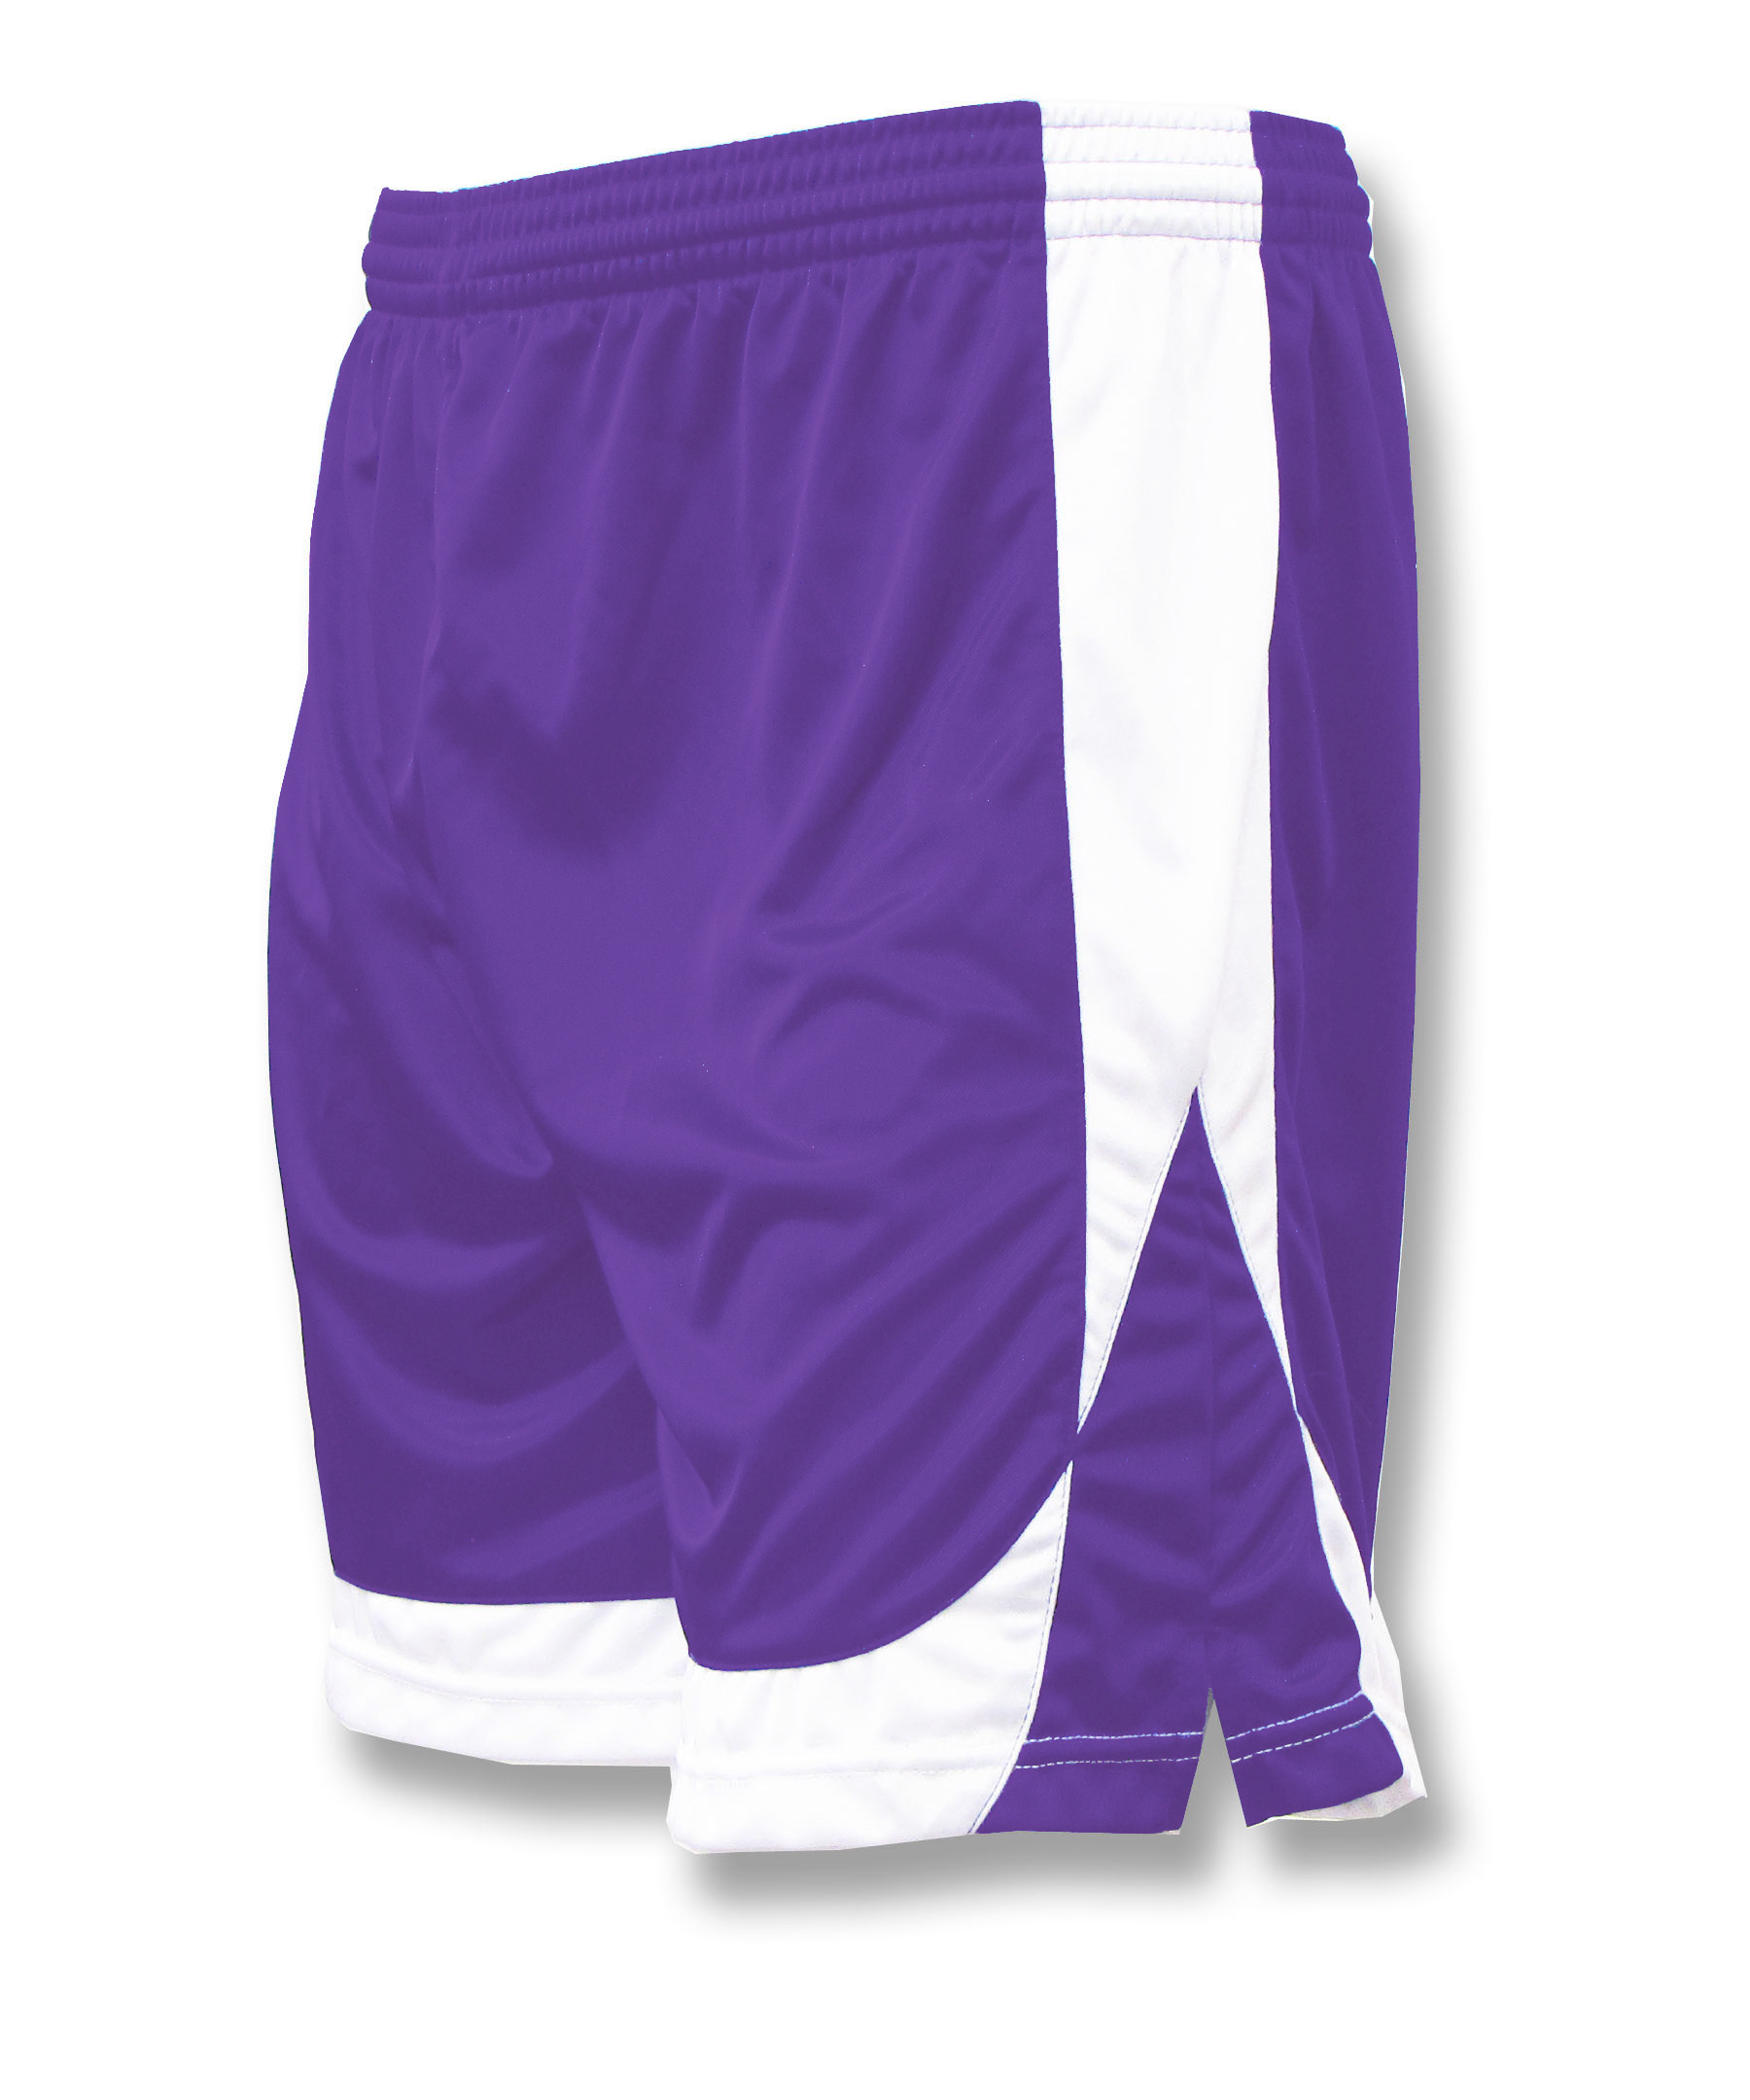 Omega soccer shorts in purple/white by Code Four Athletics